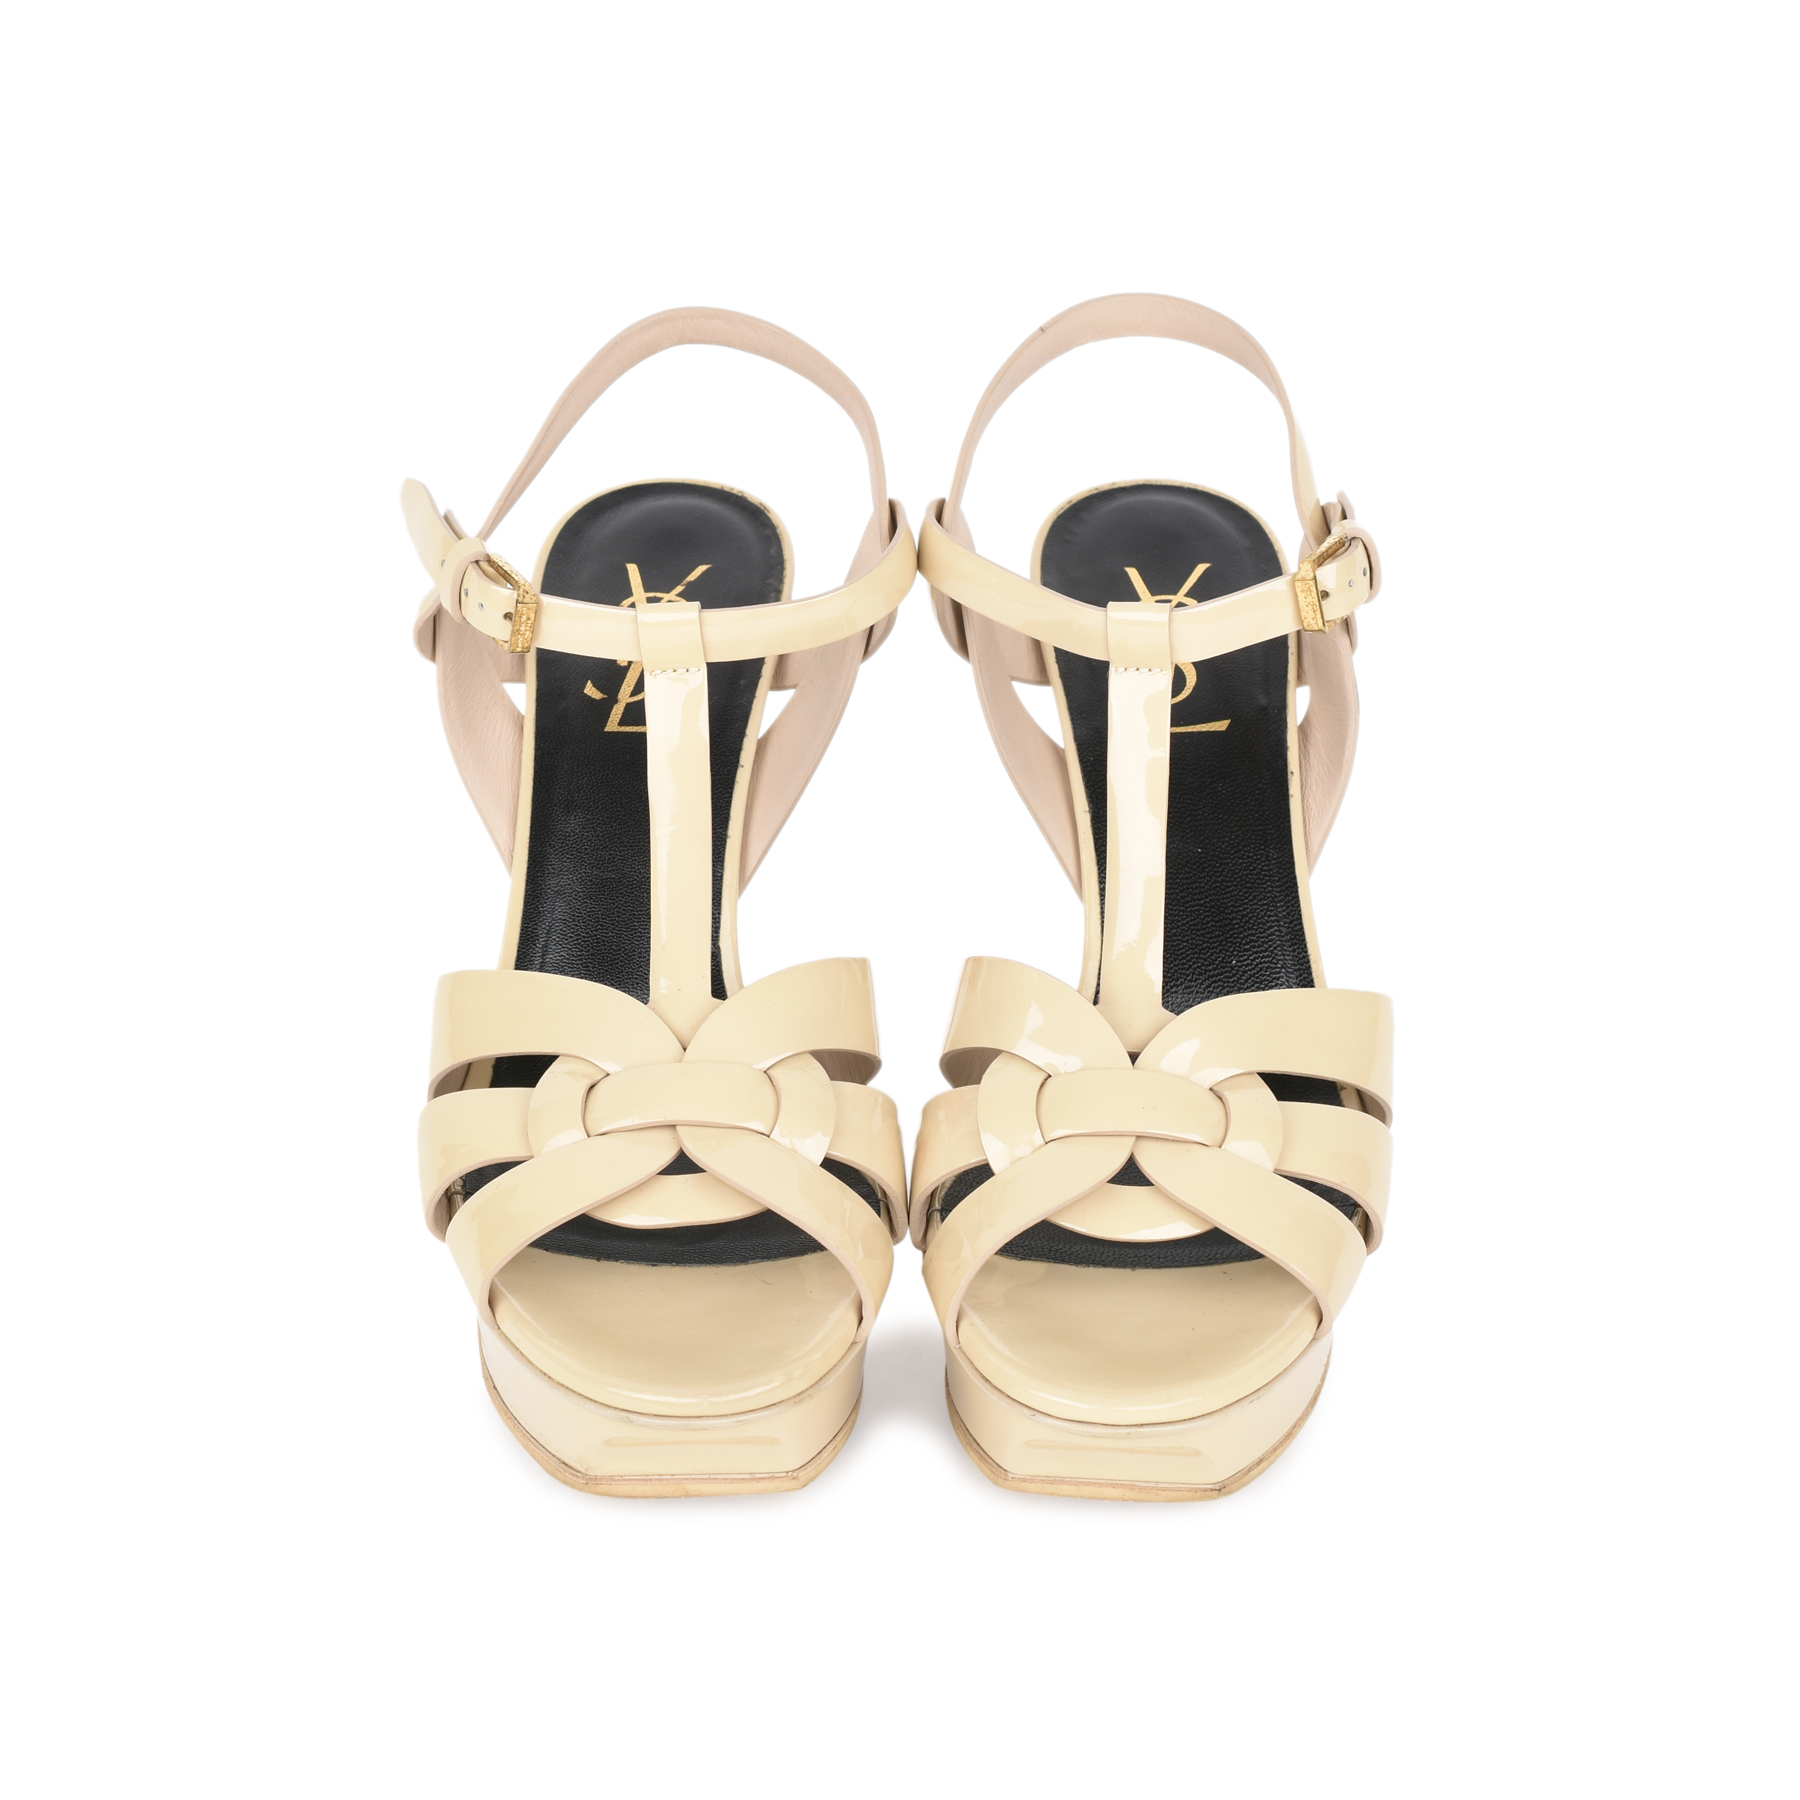 17b7d46453 Authentic Second Hand Saint Laurent Nude Patent Tribute Sandals  (PSS-532-00007) - THE FIFTH COLLECTION